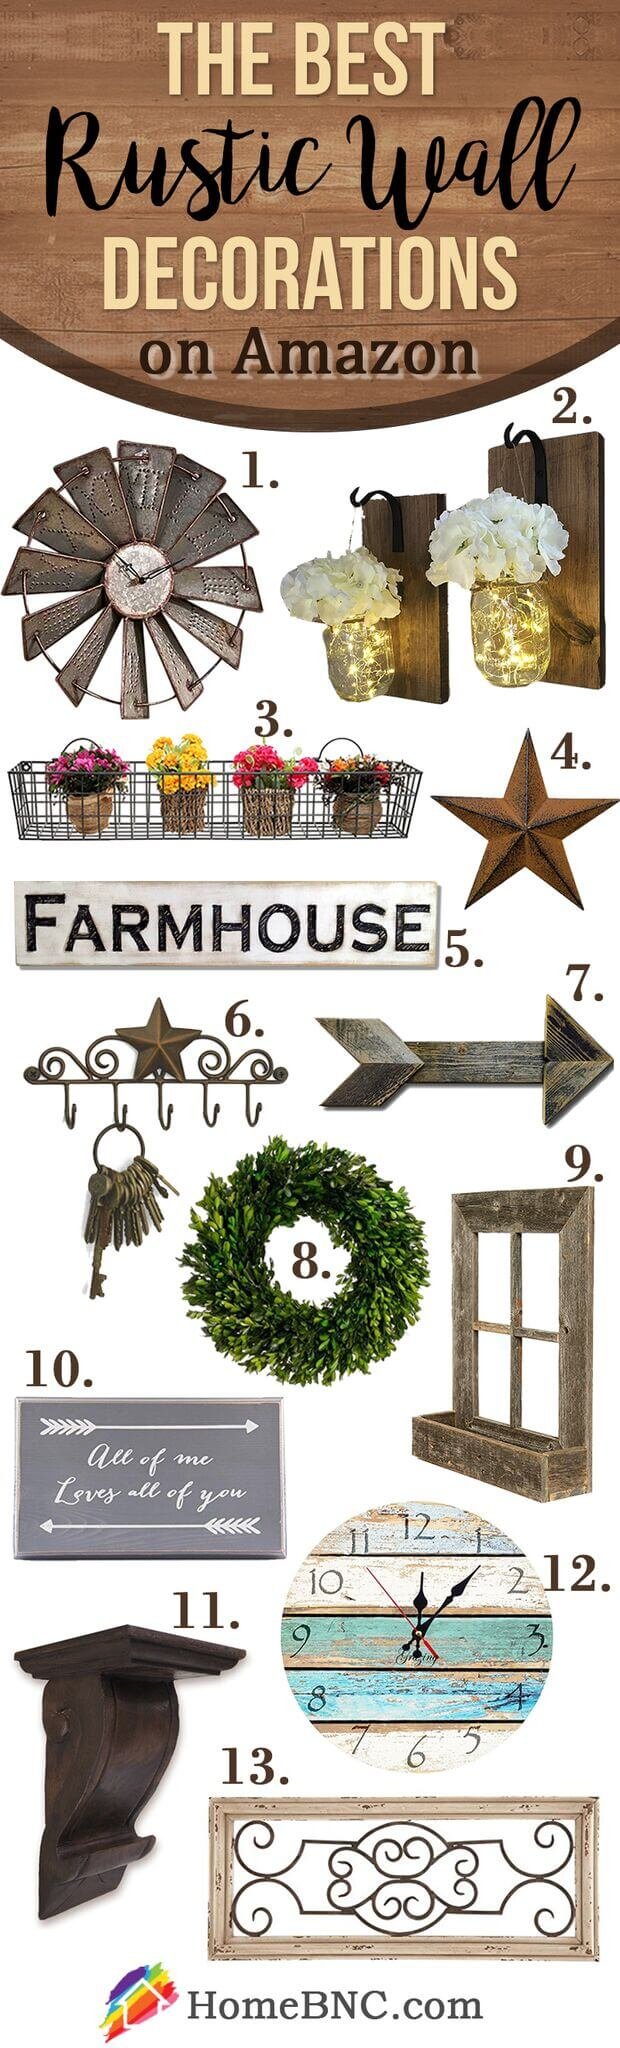 45+ Best Farmhouse Wall Decor Ideas And Designs For 2019 In Farm Metal Wall Rack And 3 Tin Pot With Hanger Wall Decor (View 9 of 30)